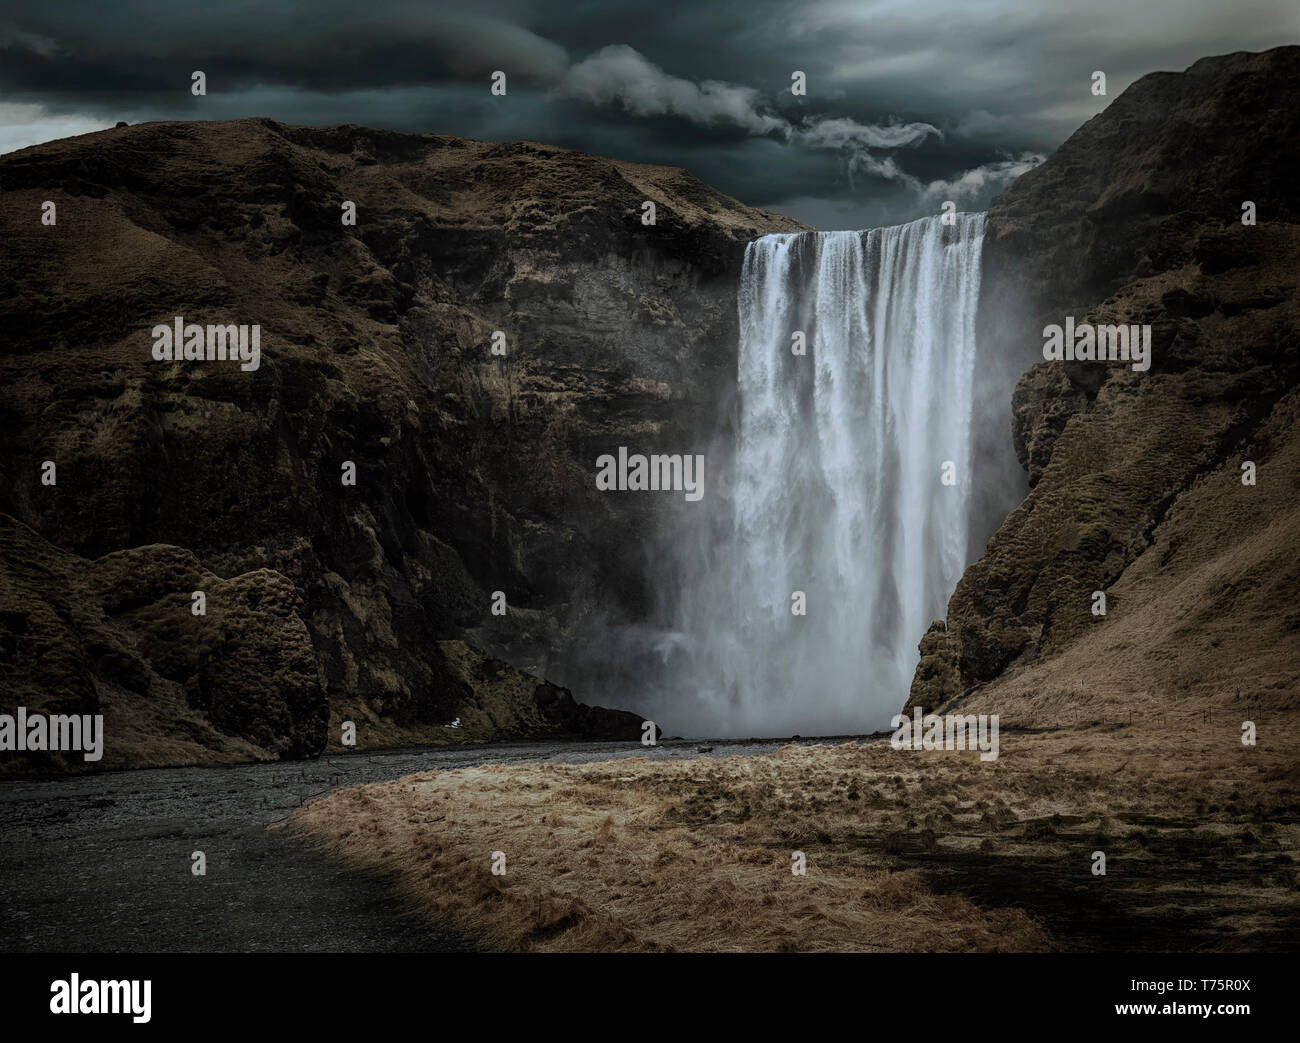 Majestic and dark Skogafoss waterfall in Iceland in a stormy day, moody atmosphere Stock Photo